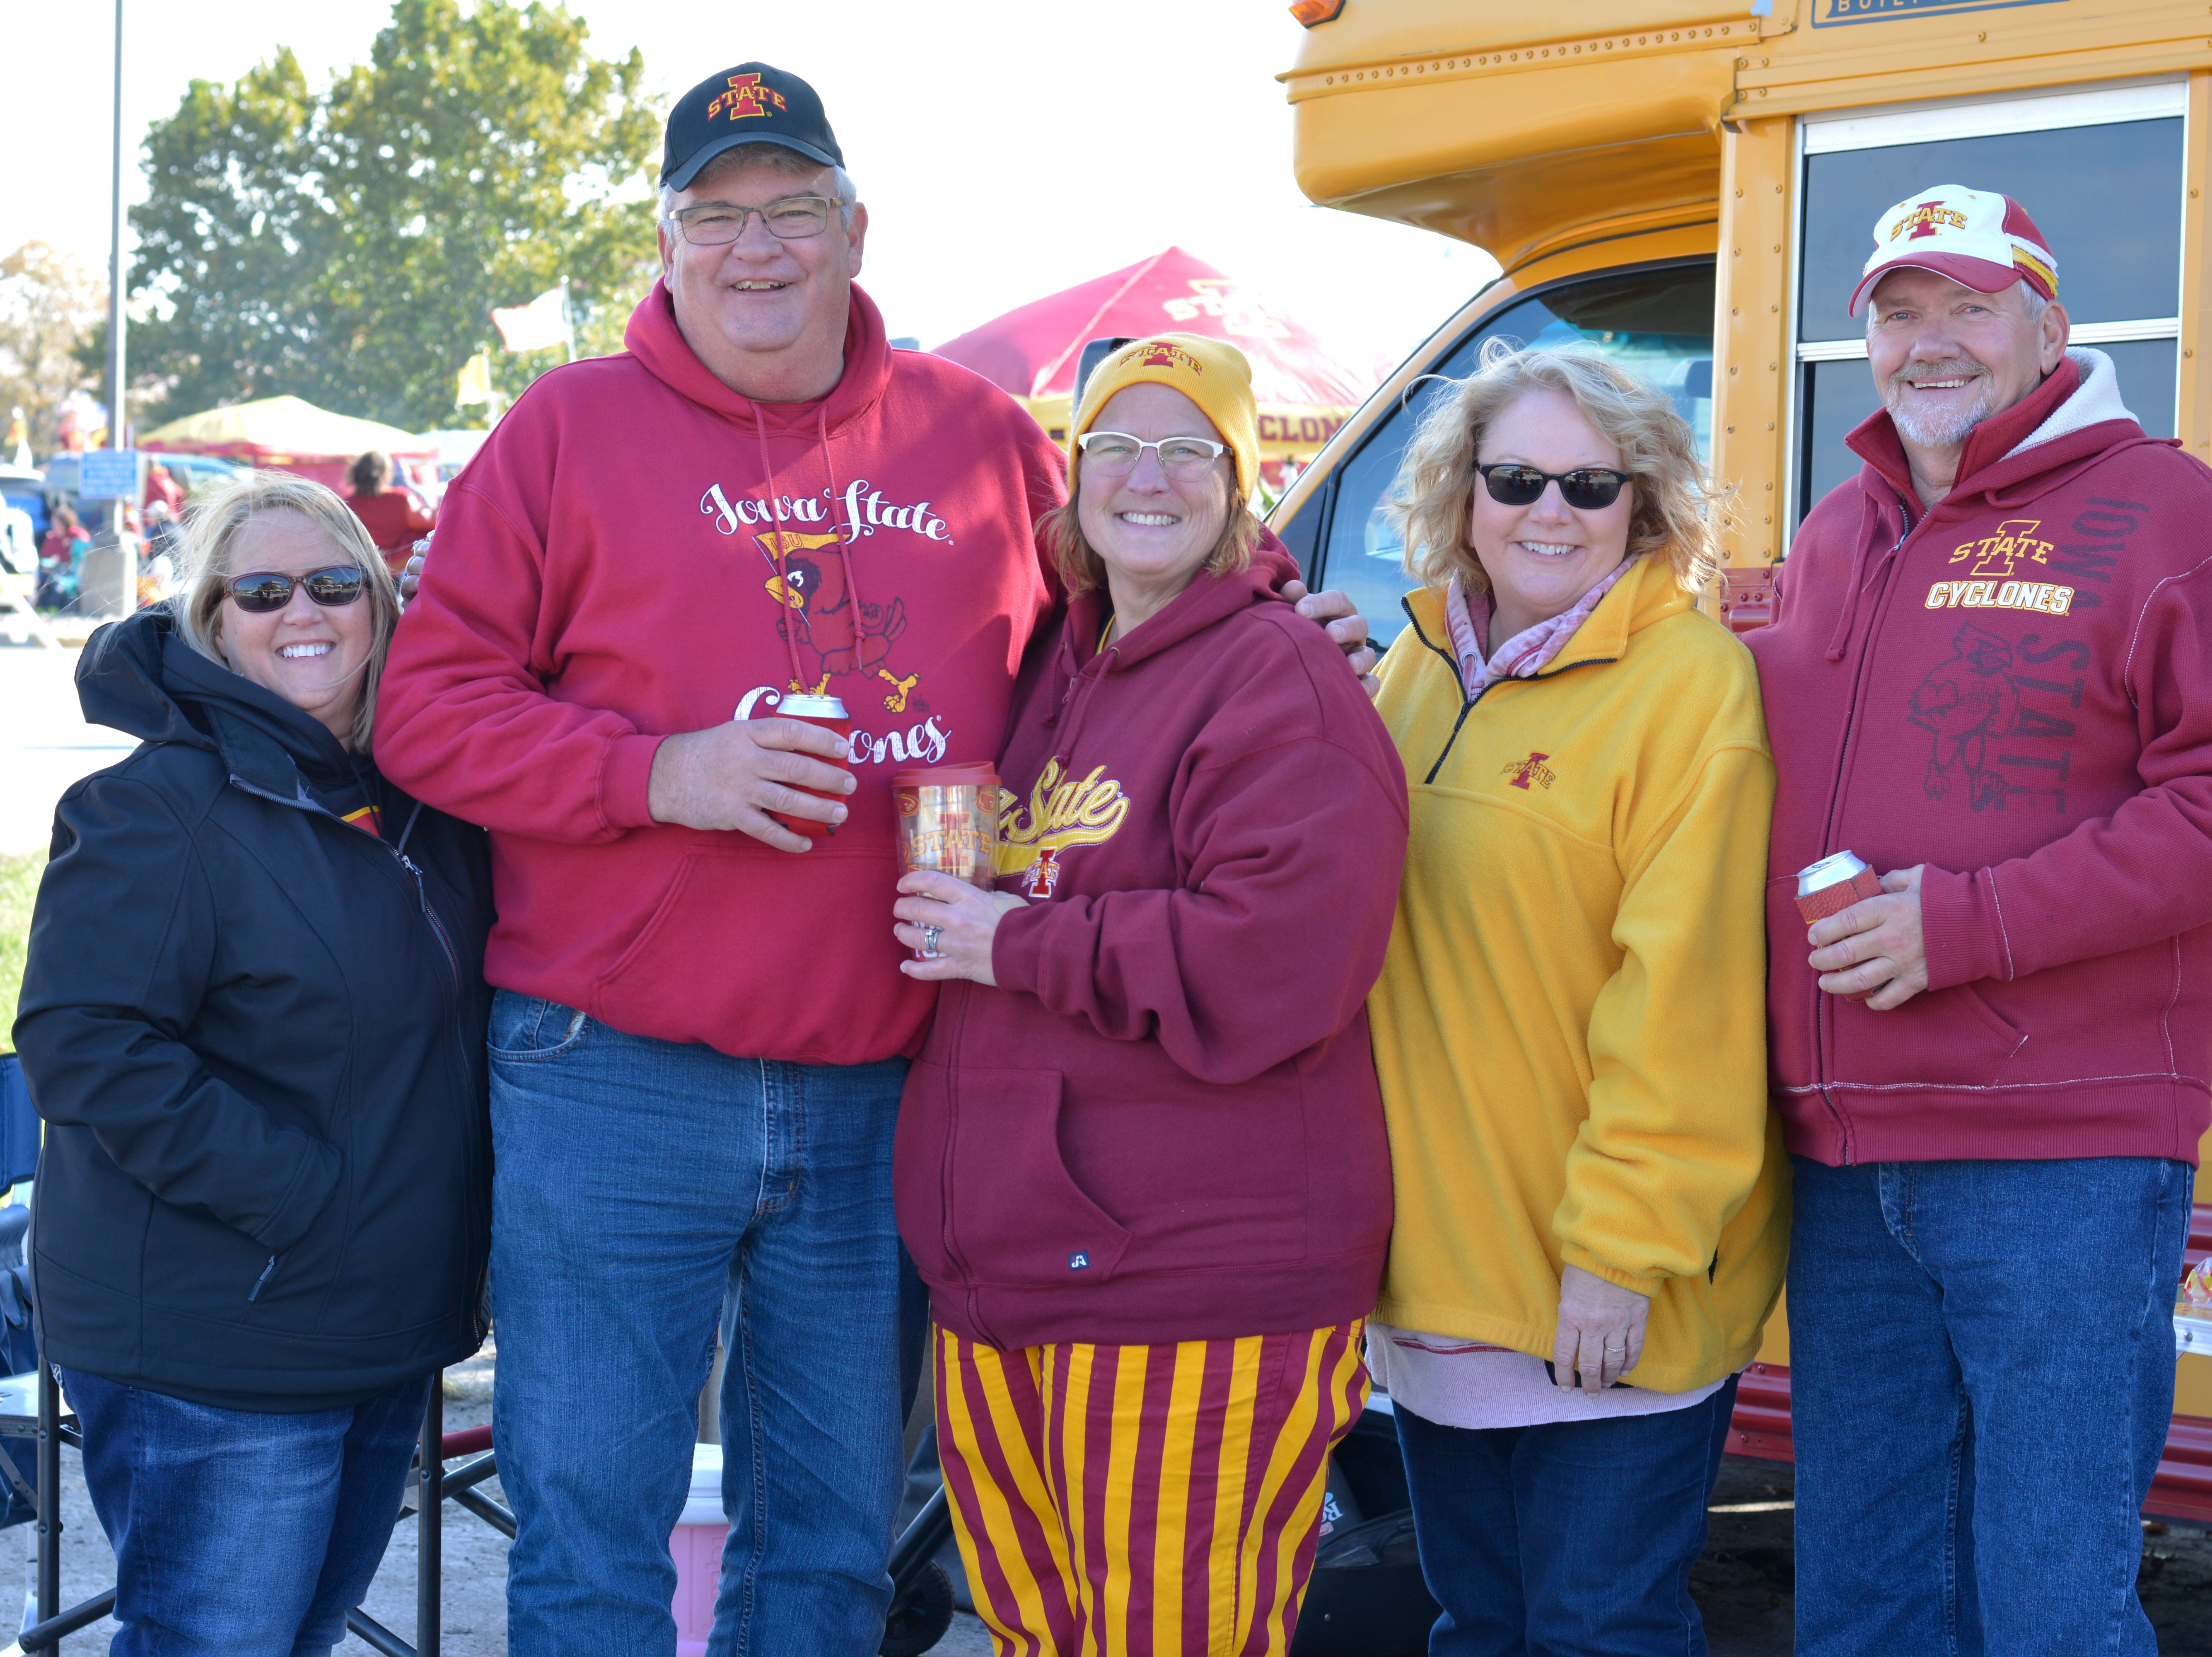 DeAnn Scharingson (from left) Bruce Uthe, Michelle Uthe, Dee Savits and Jon Savits before the Iowa State University football game against West Virginia in Ames on Oct. 13.